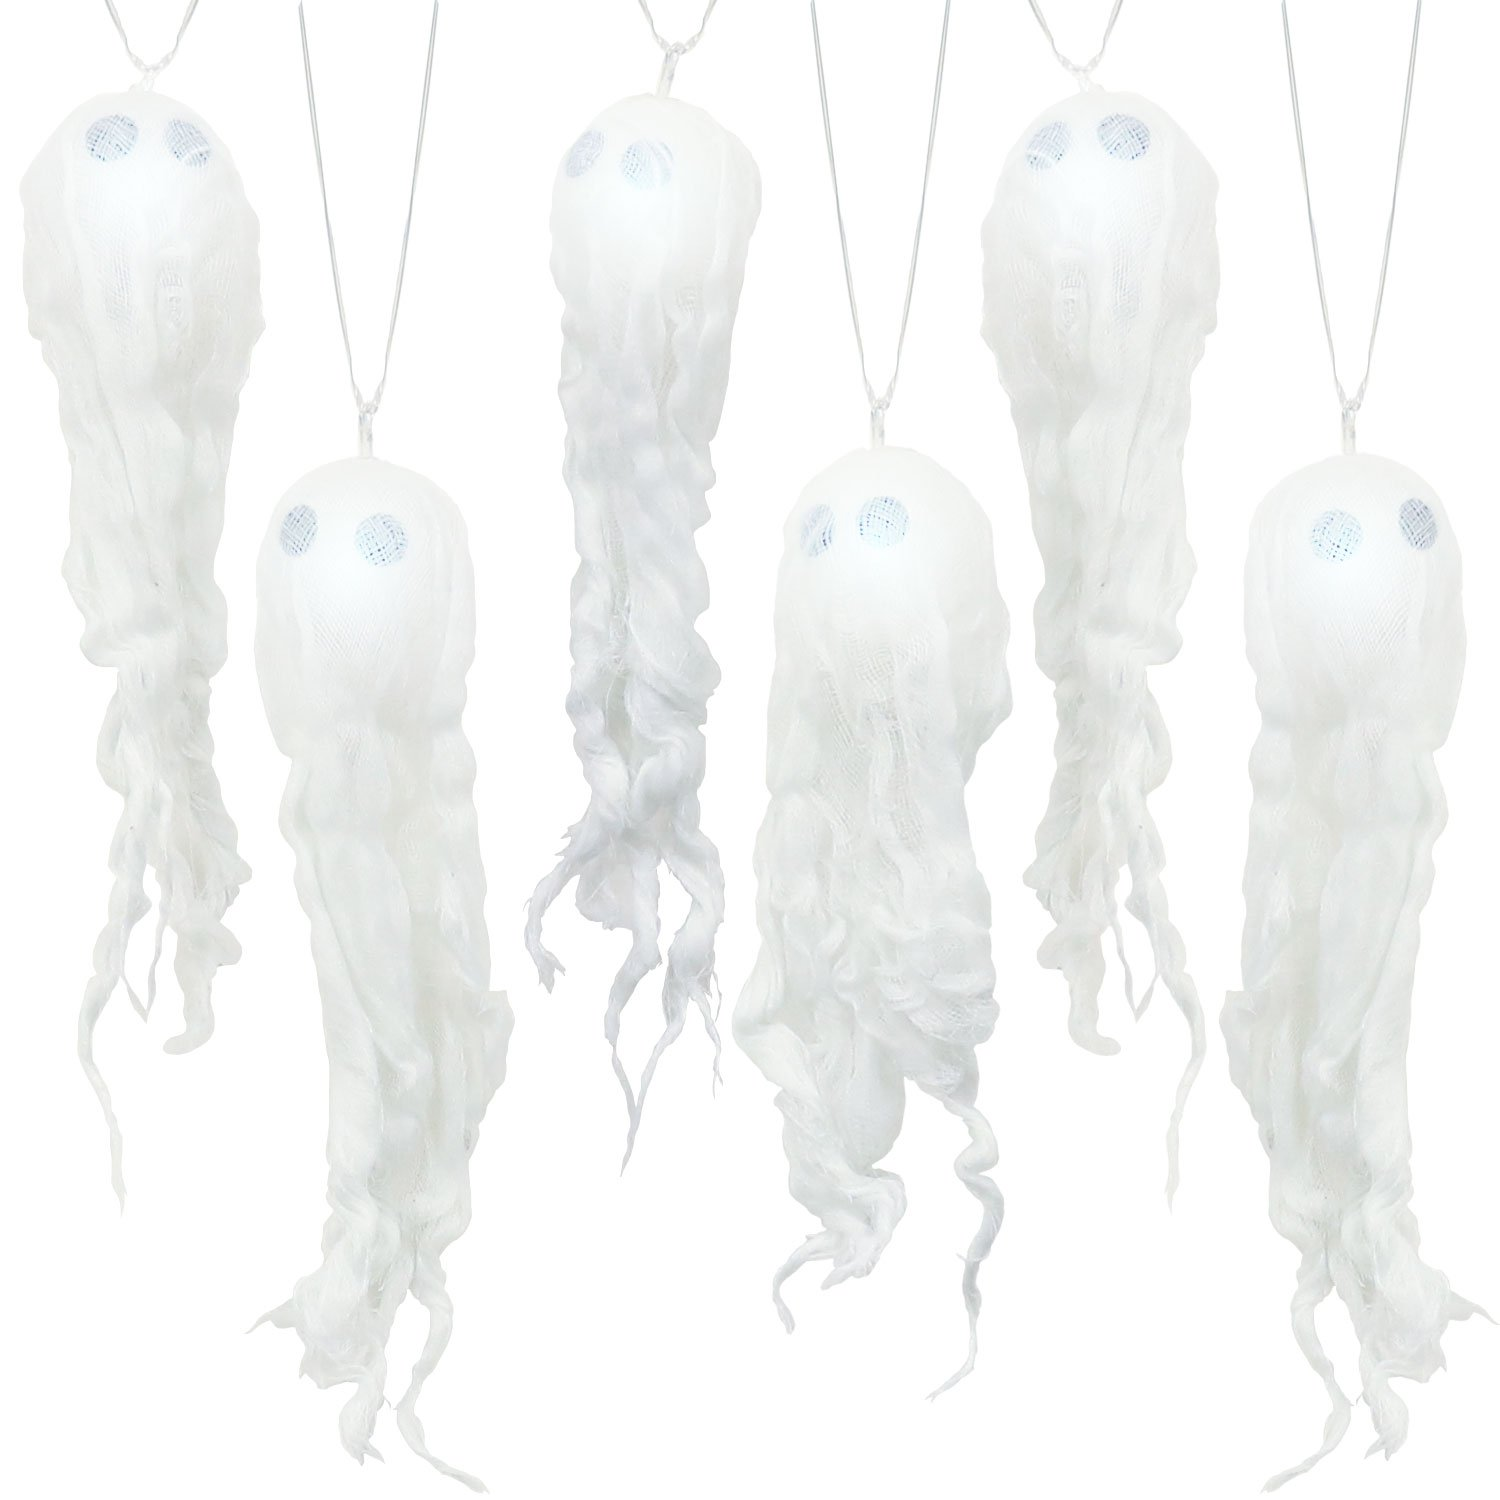 Halloween Haunters Light-Up LED Hanging Ghost Garland String Lights Prop Decoration Party Décor